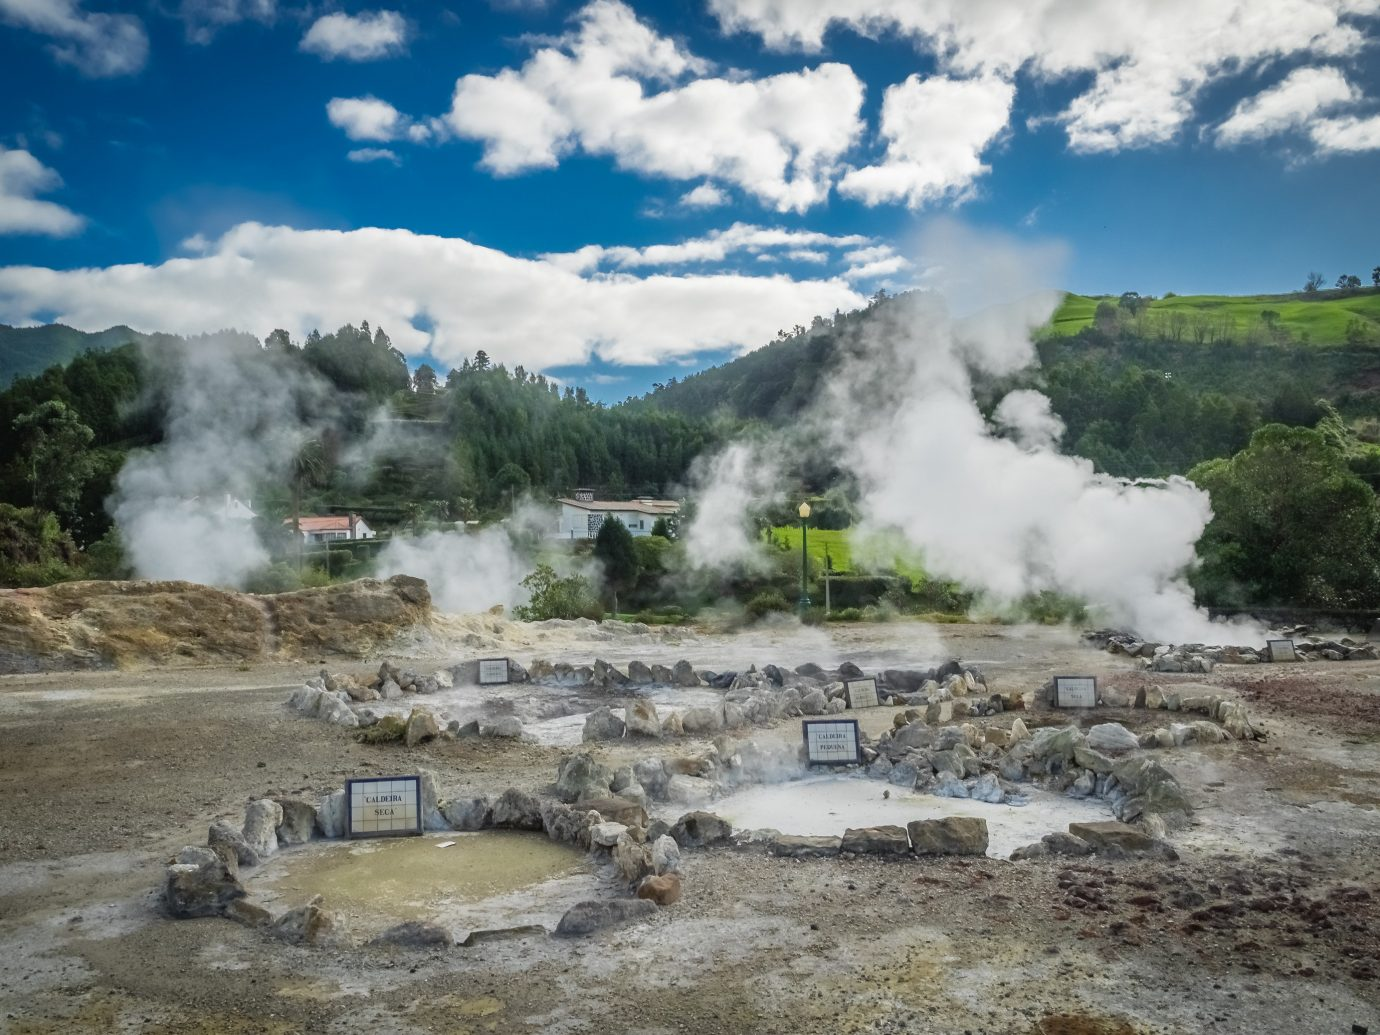 Portugal Trip Ideas body of water hot spring geyser water water resources cloud sky fluvial landforms of streams national park landscape geology mountain tree spring